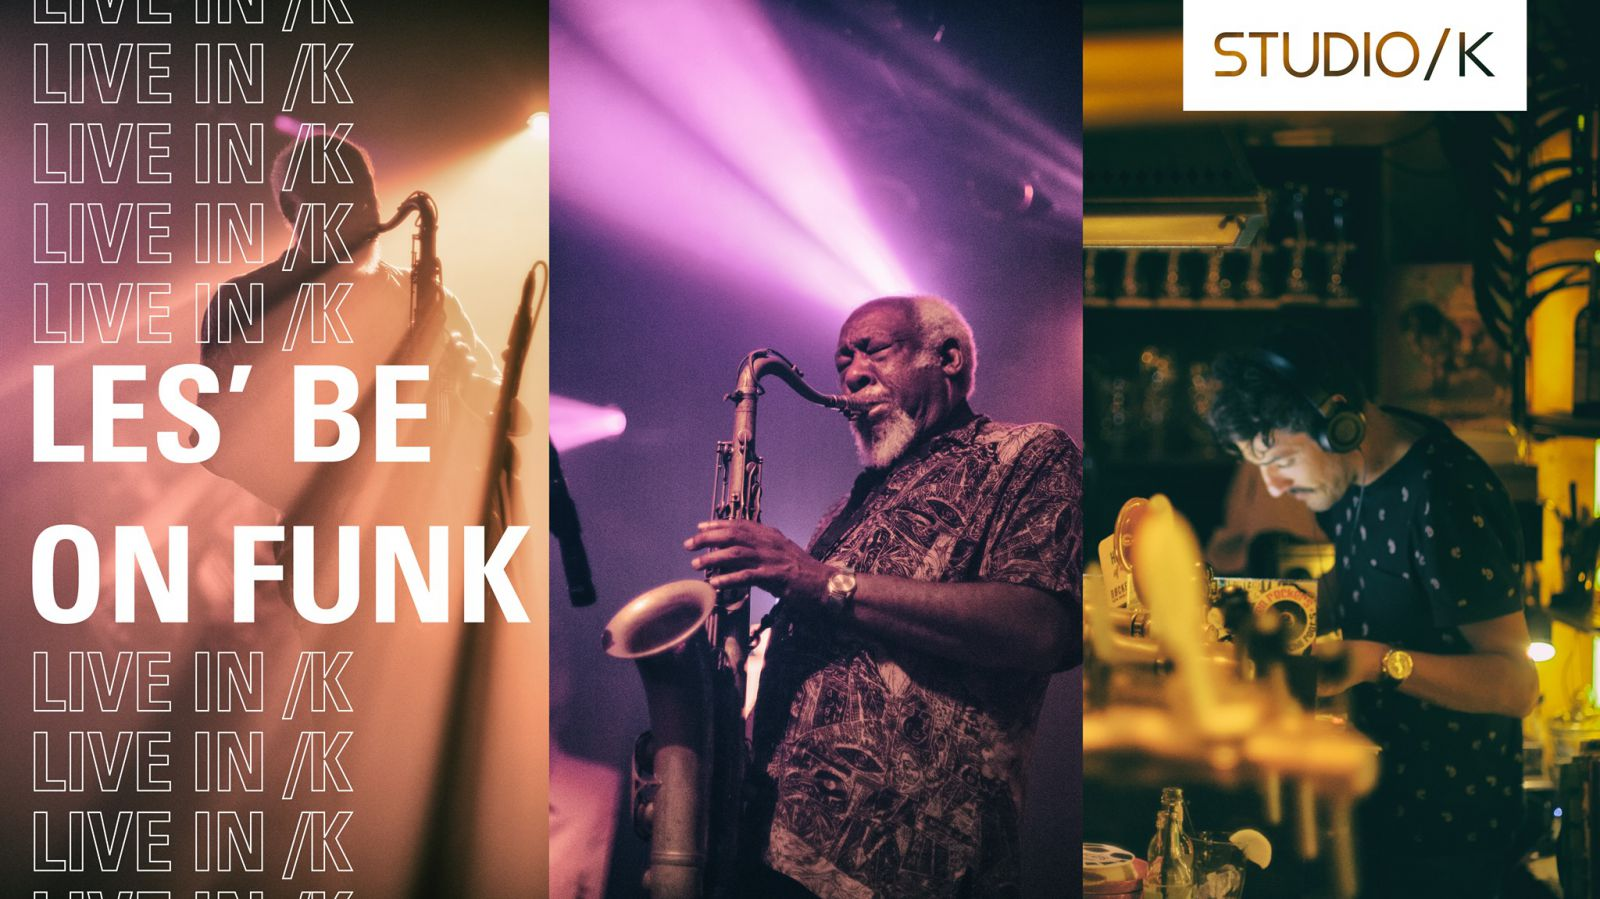 Les' Be on Funk | Live in /K